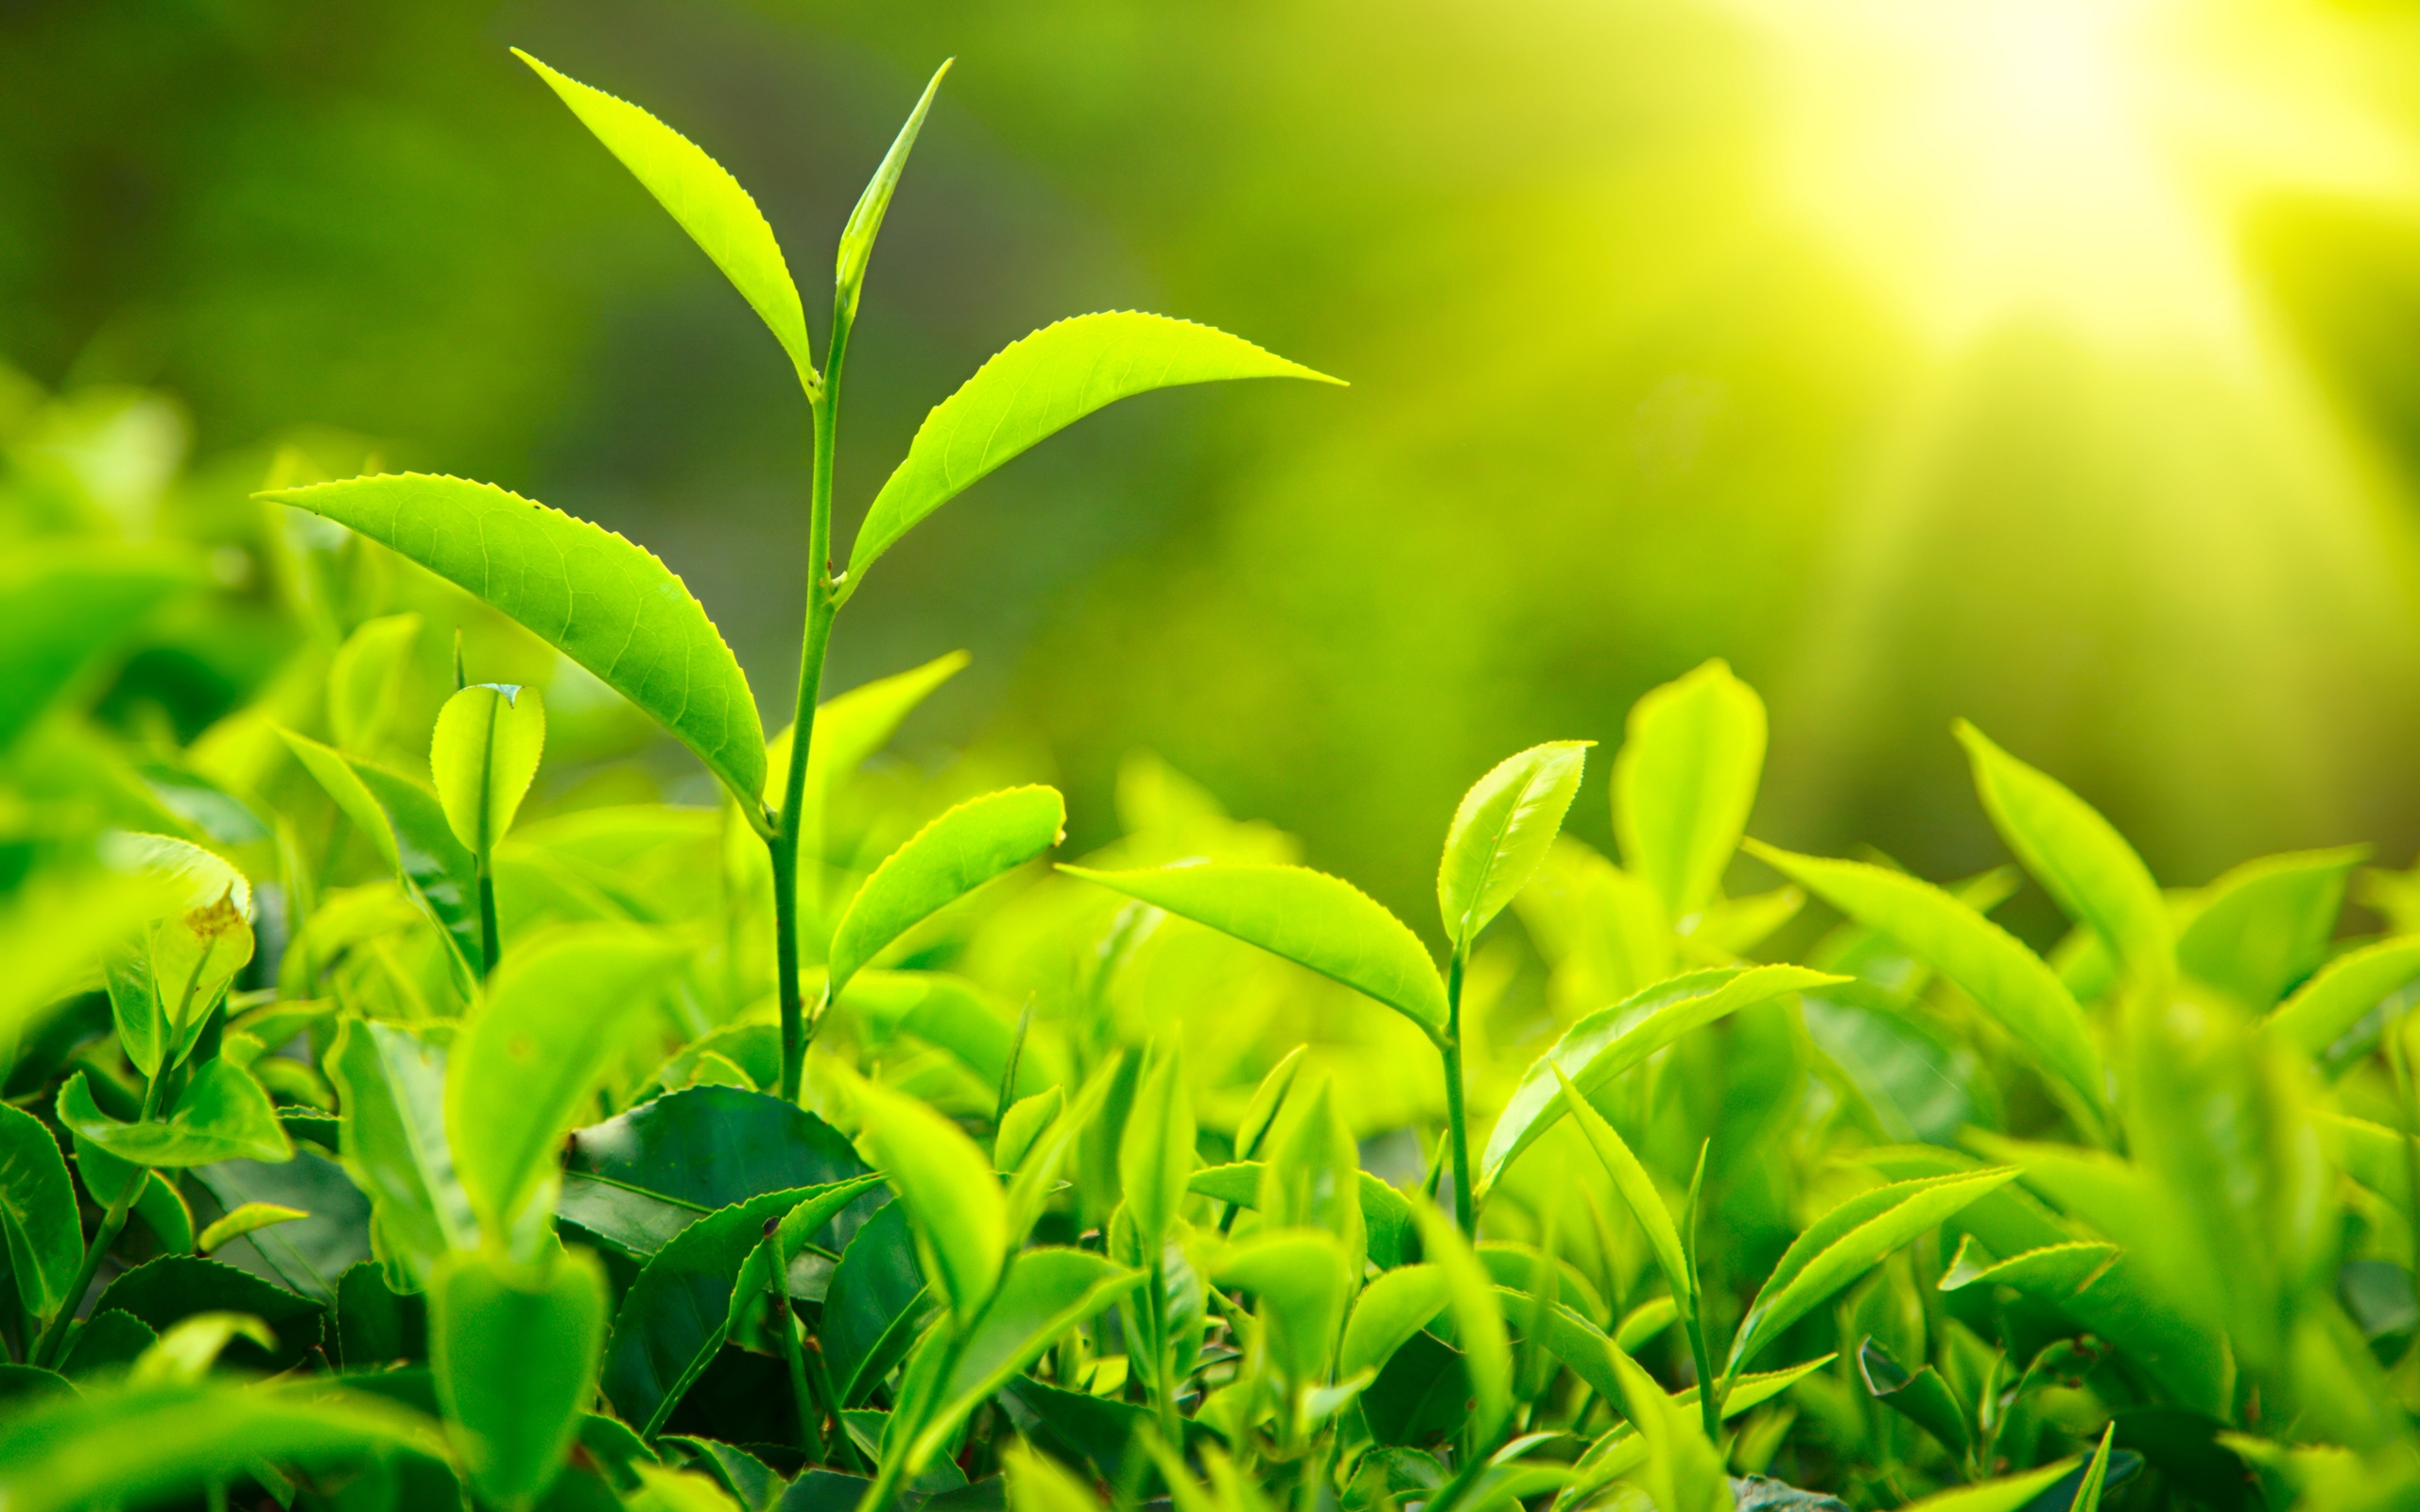 fresh-green-tea-leaves-sunlight_2560x1600